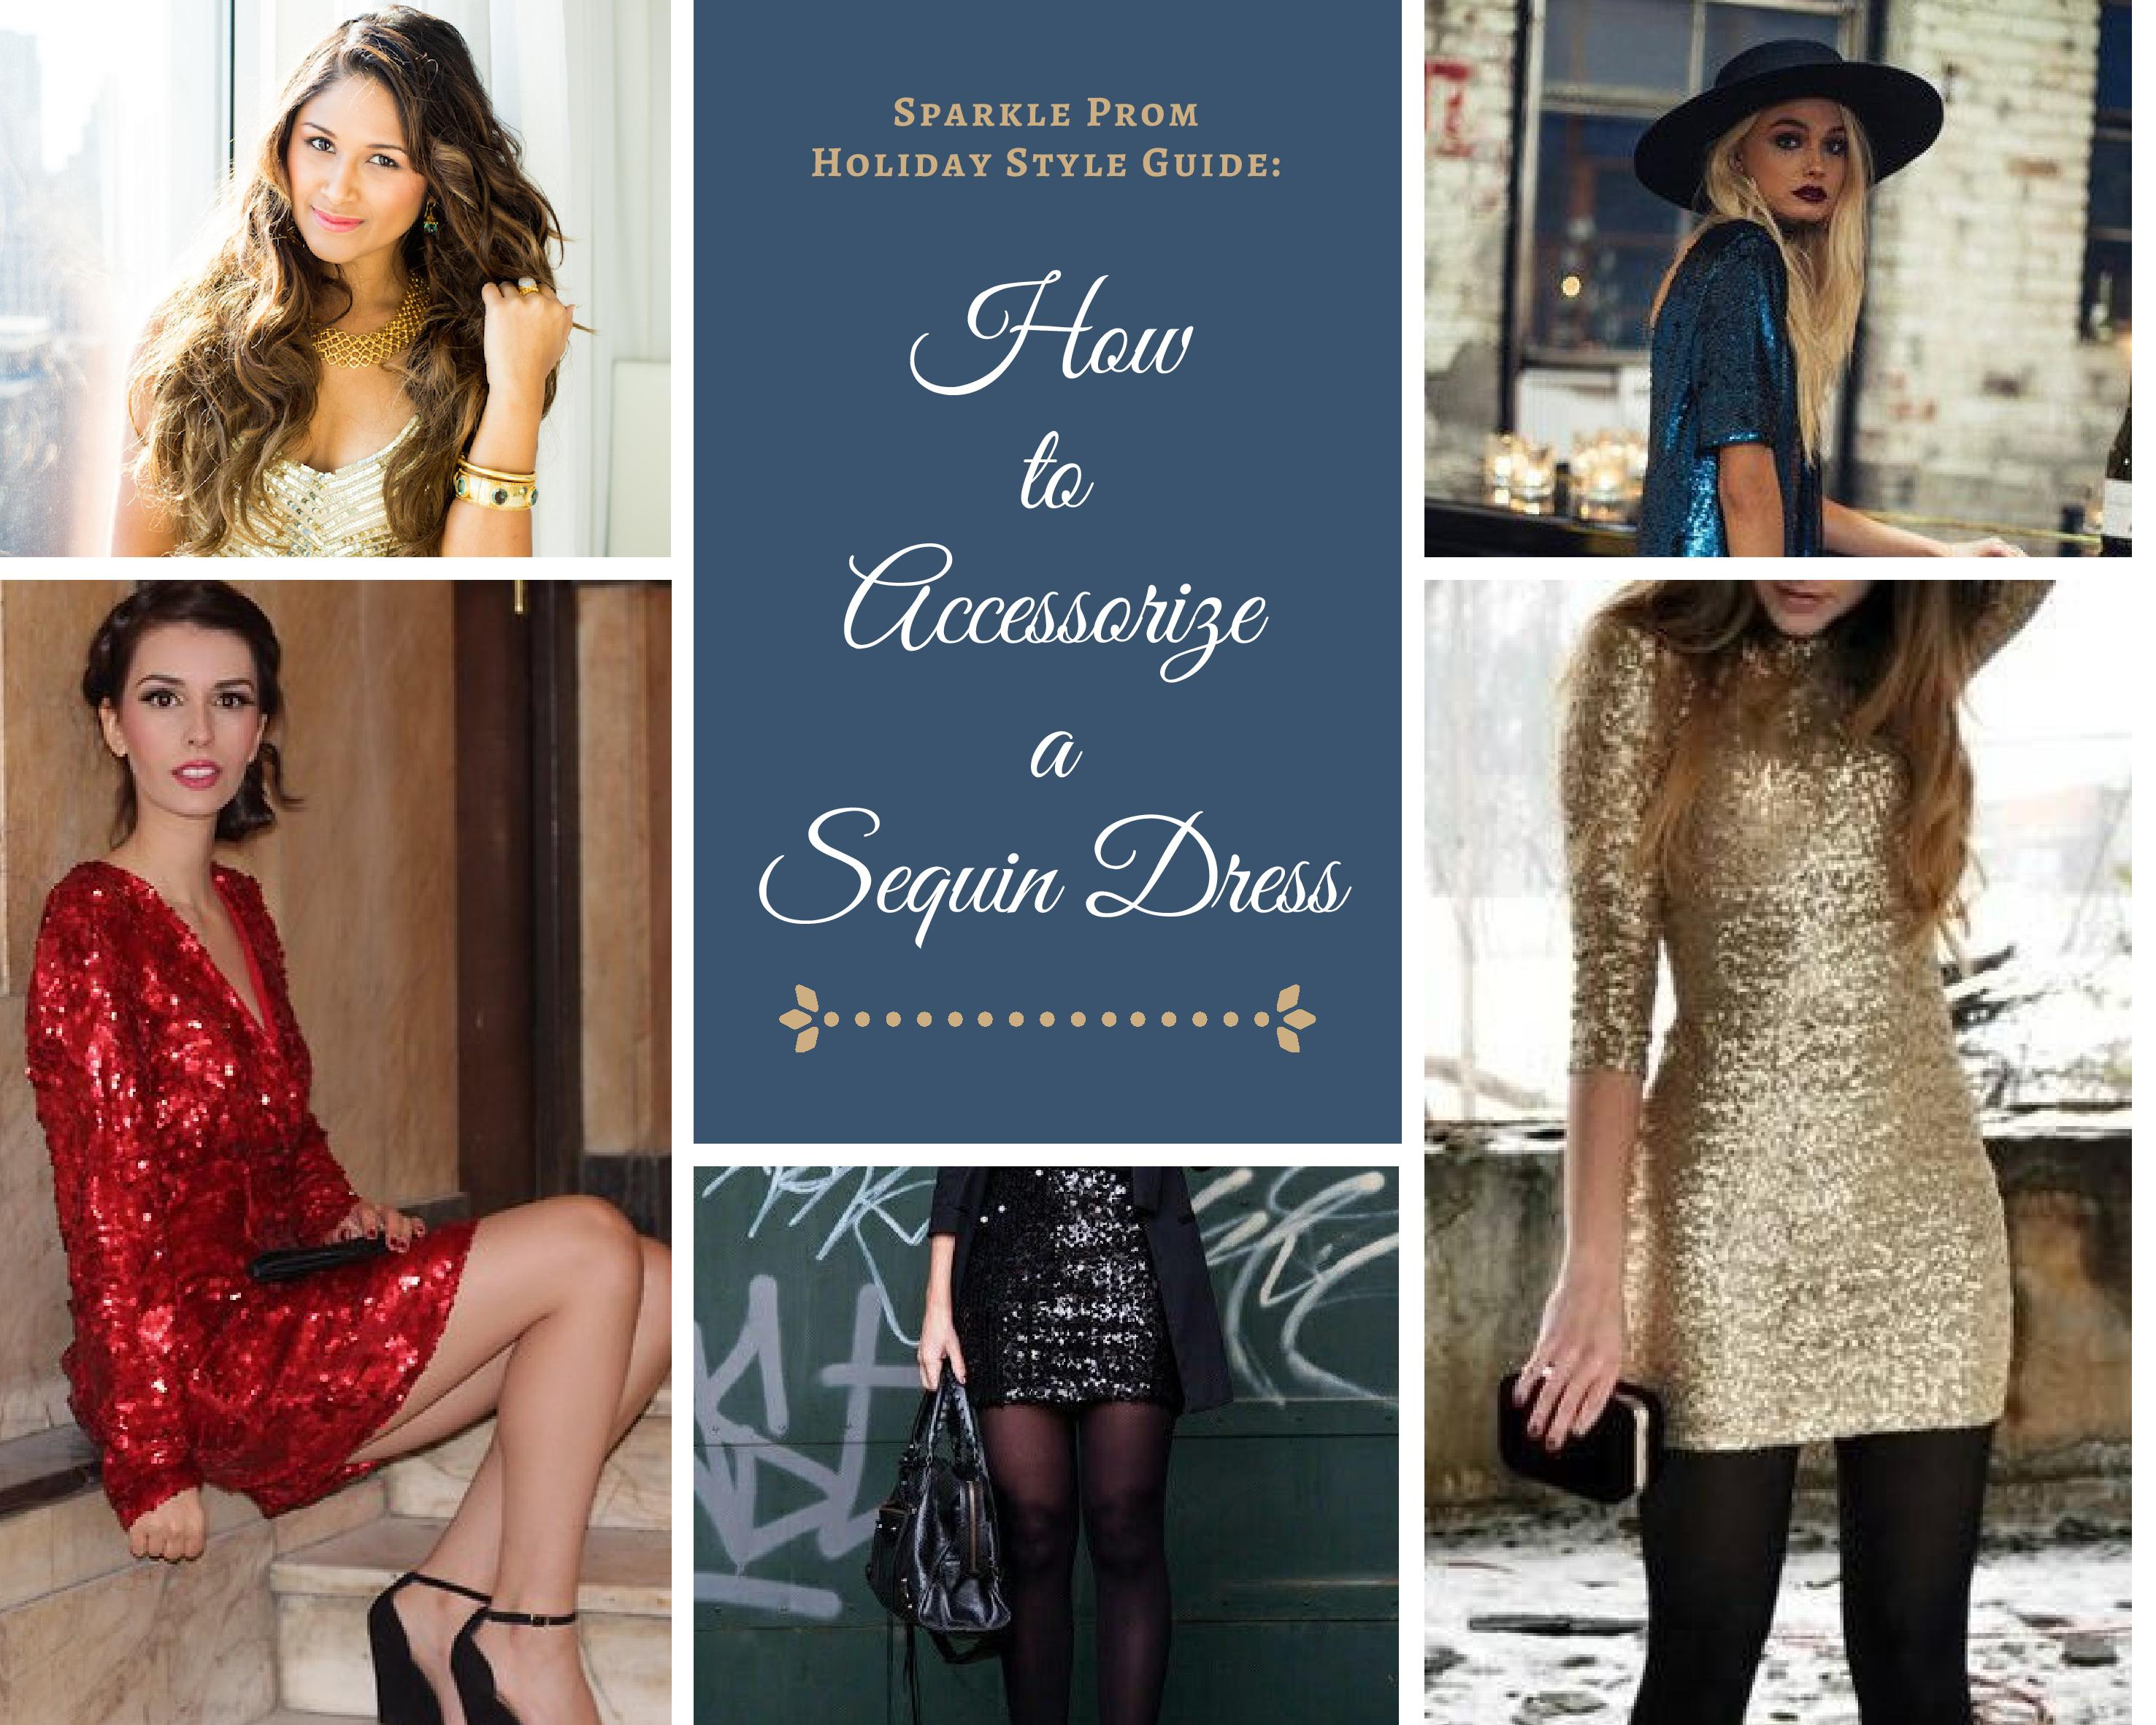 29179a8e2abb Holiday Style Guide  How to Accessorize a Sequin Dress – Sparkle Prom  Fashion Blog